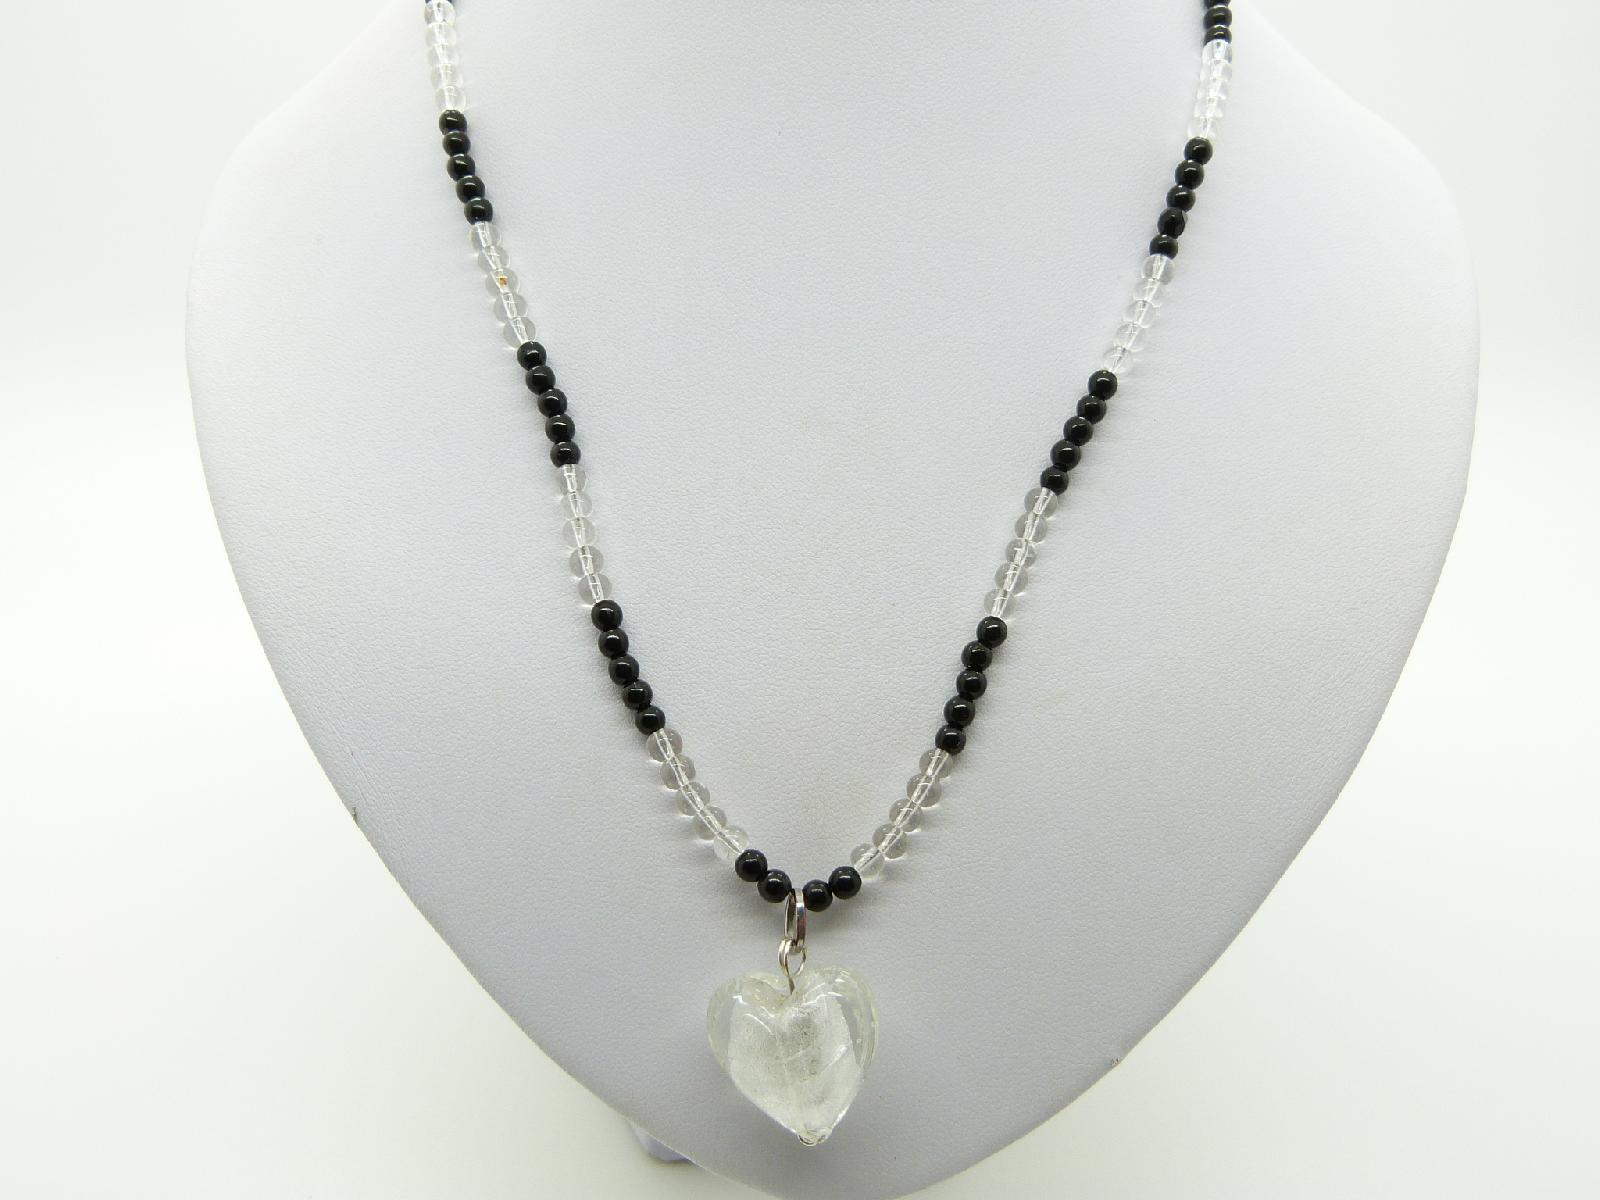 £8.00 - Vintage Redesigned Black and Clear Glass Bead Necklace White Heart Pendant